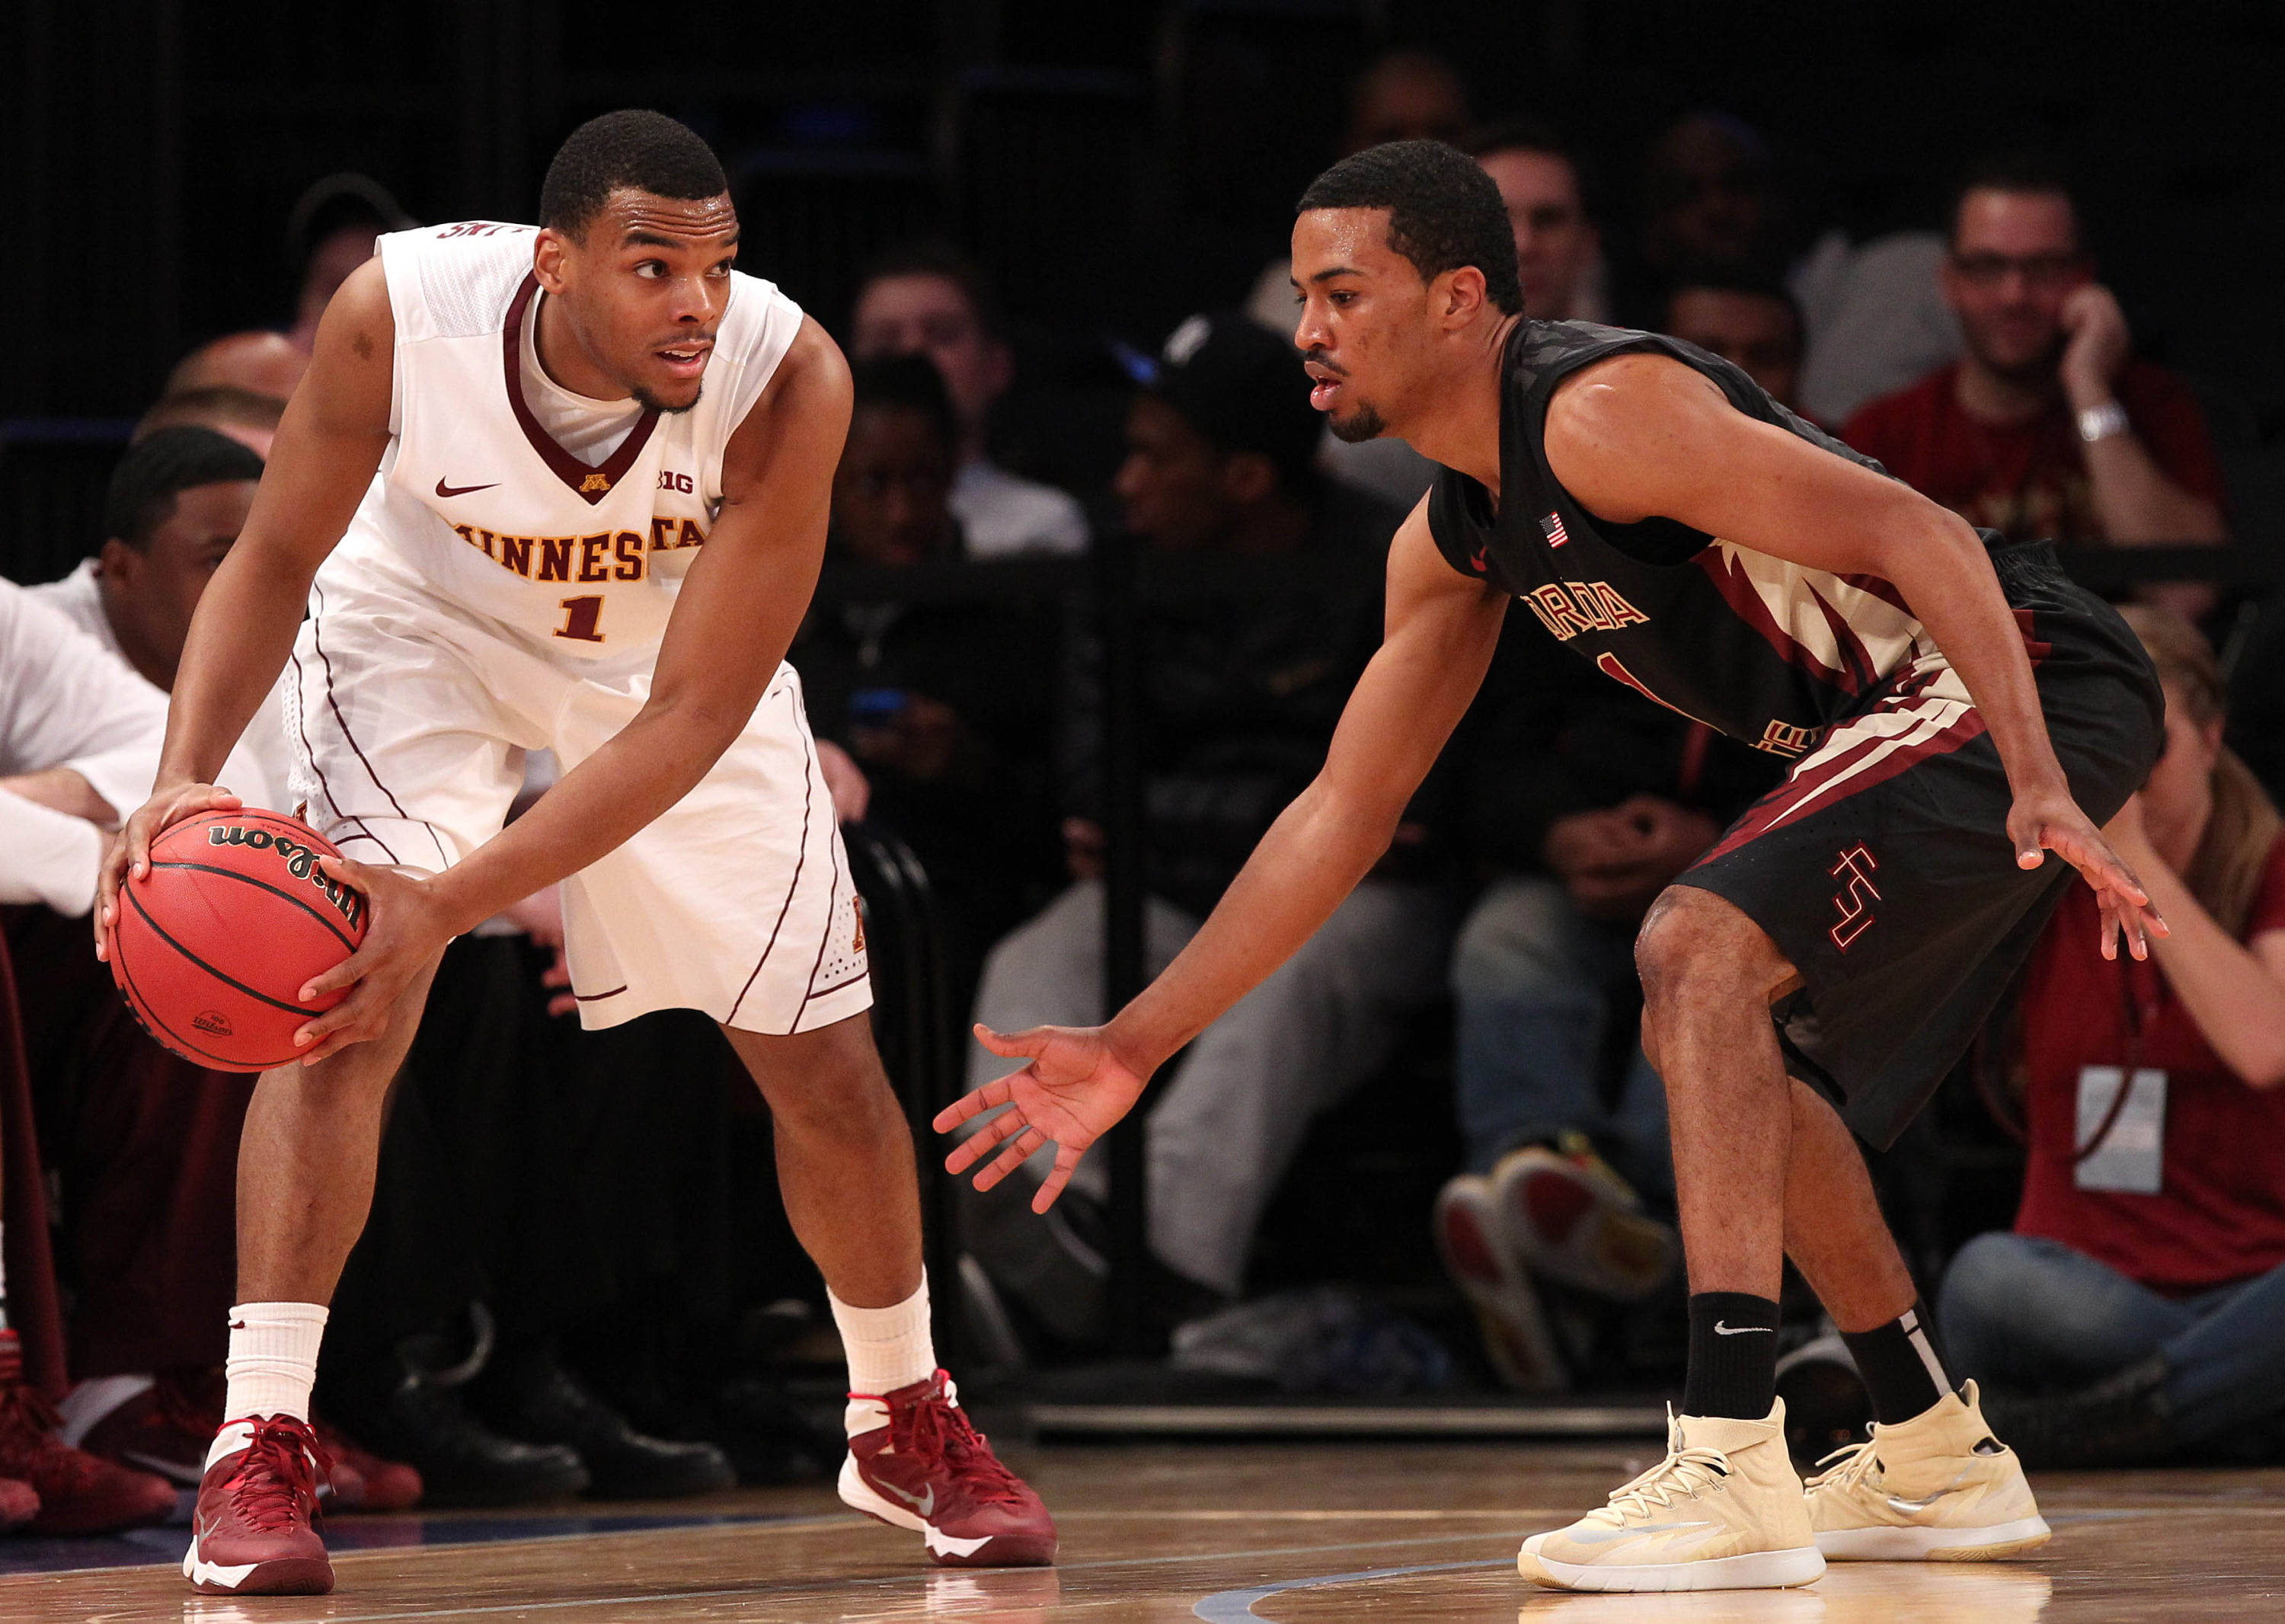 Apr 1, 2014; New York, NY, USA; Minnesota Golden Gophers guard Andre Hollins (1) looks to pass defended by Florida State Seminoles guard Devon Bookert (1) during the second half at Madison Square Garden. The Minnesota Golden Gophers defeated the Florida State Seminoles 67-64 in overtime. Mandatory Credit: Adam Hunger-USA TODAY Sports